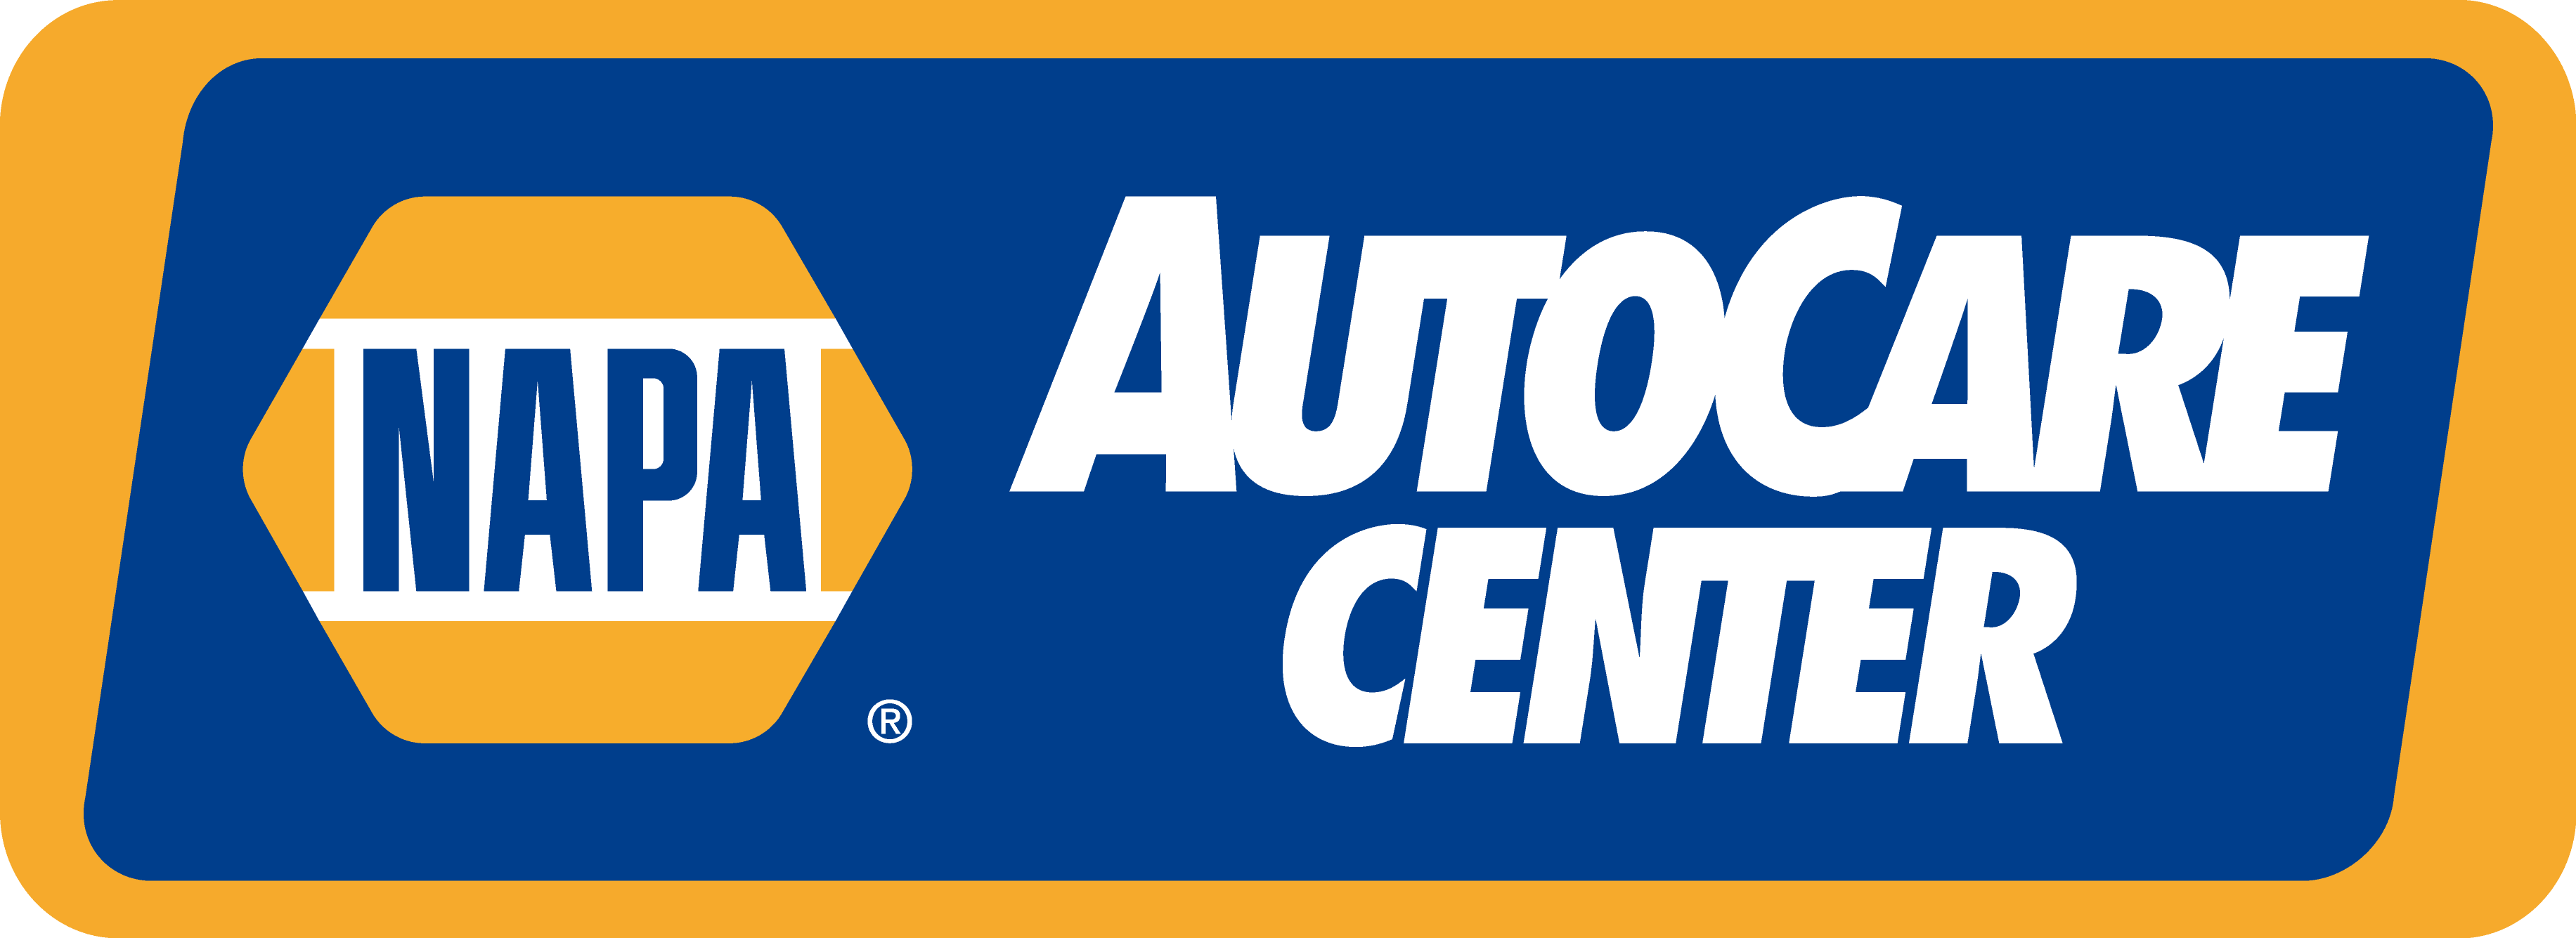 NAPA Auto Care Center, Mina's Transmission & Auto Repair, Orlando, FL, 32807